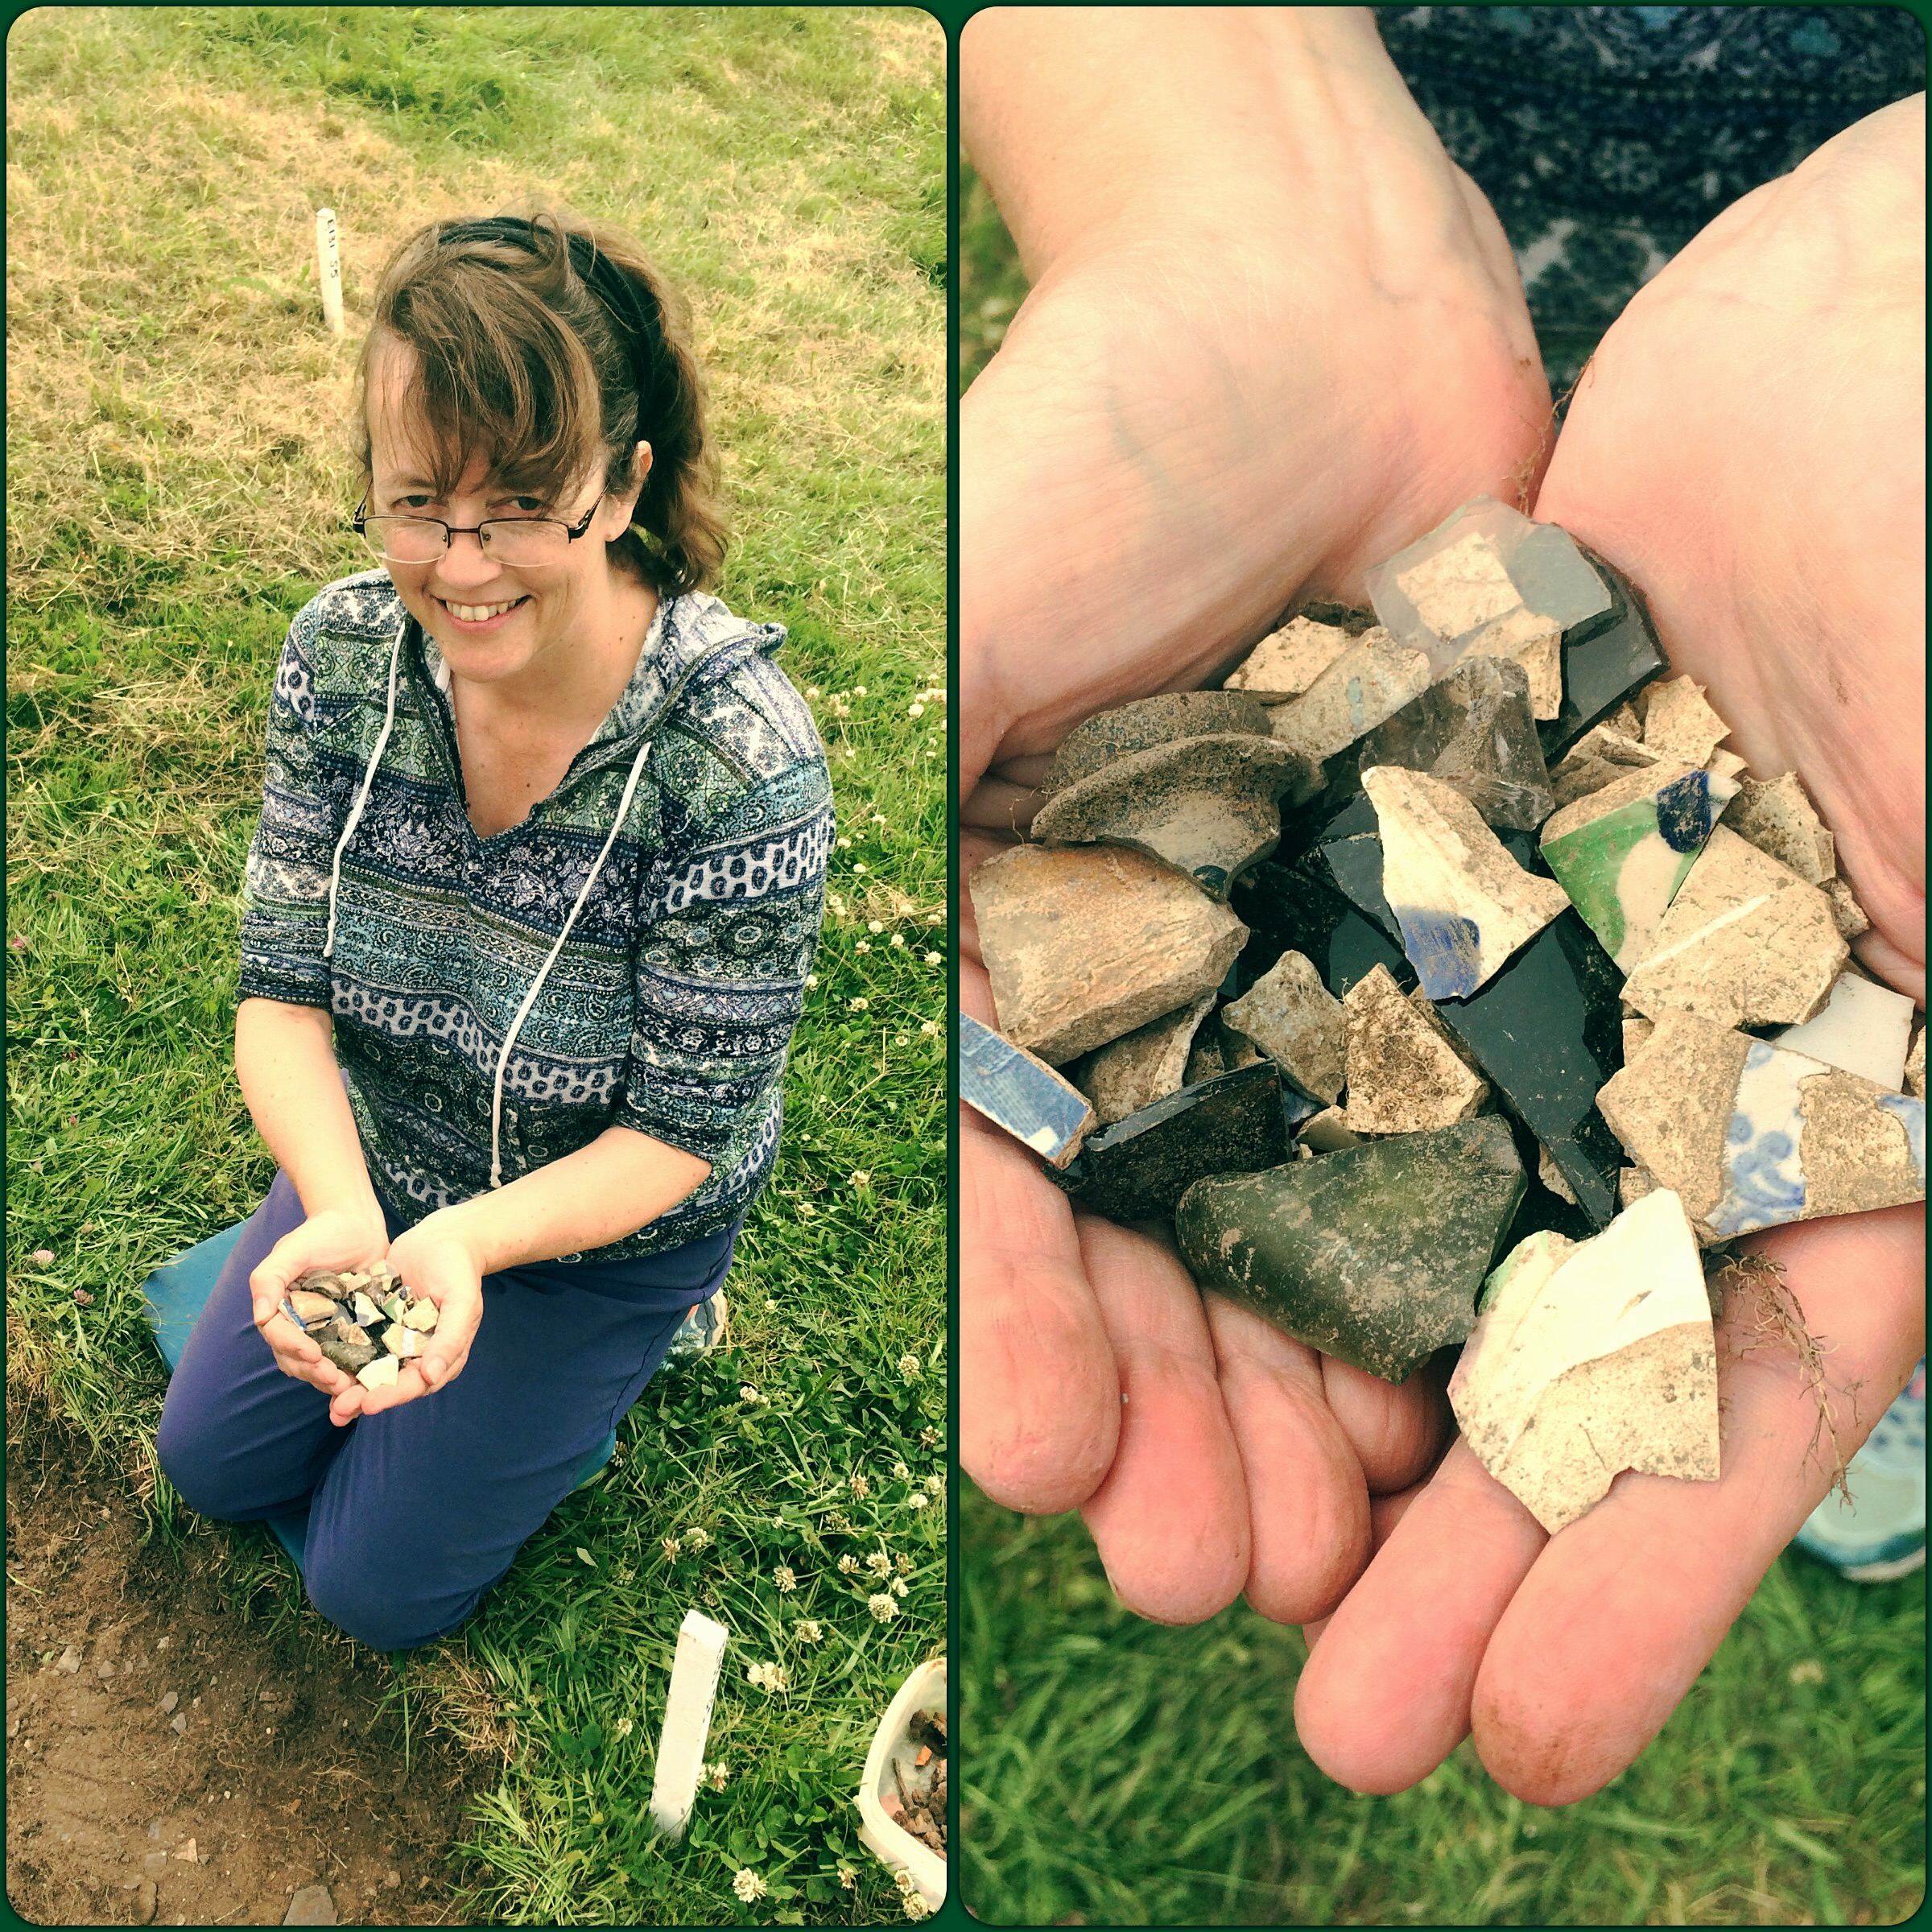 Liz Newton from Topsail, Newfoundland, participated in our Archaeologist for a Day program. She found handfuls of ceramics, glass, tobacco pipes, and lots of iron nails (not pictured)! She had a blast!